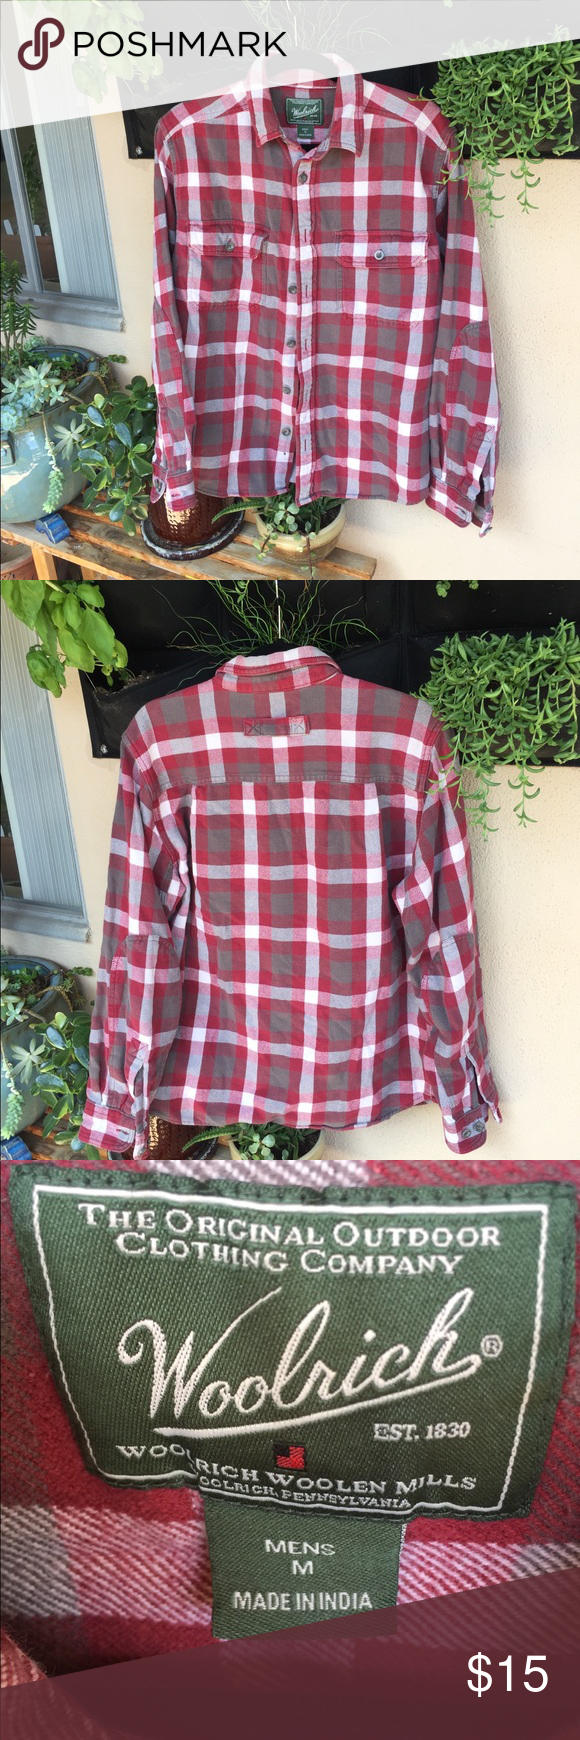 Red flannel shirt black jeans  Woolrich Menus Plaid Heavy Cotton Flannel Shirt  Rondiius Closet